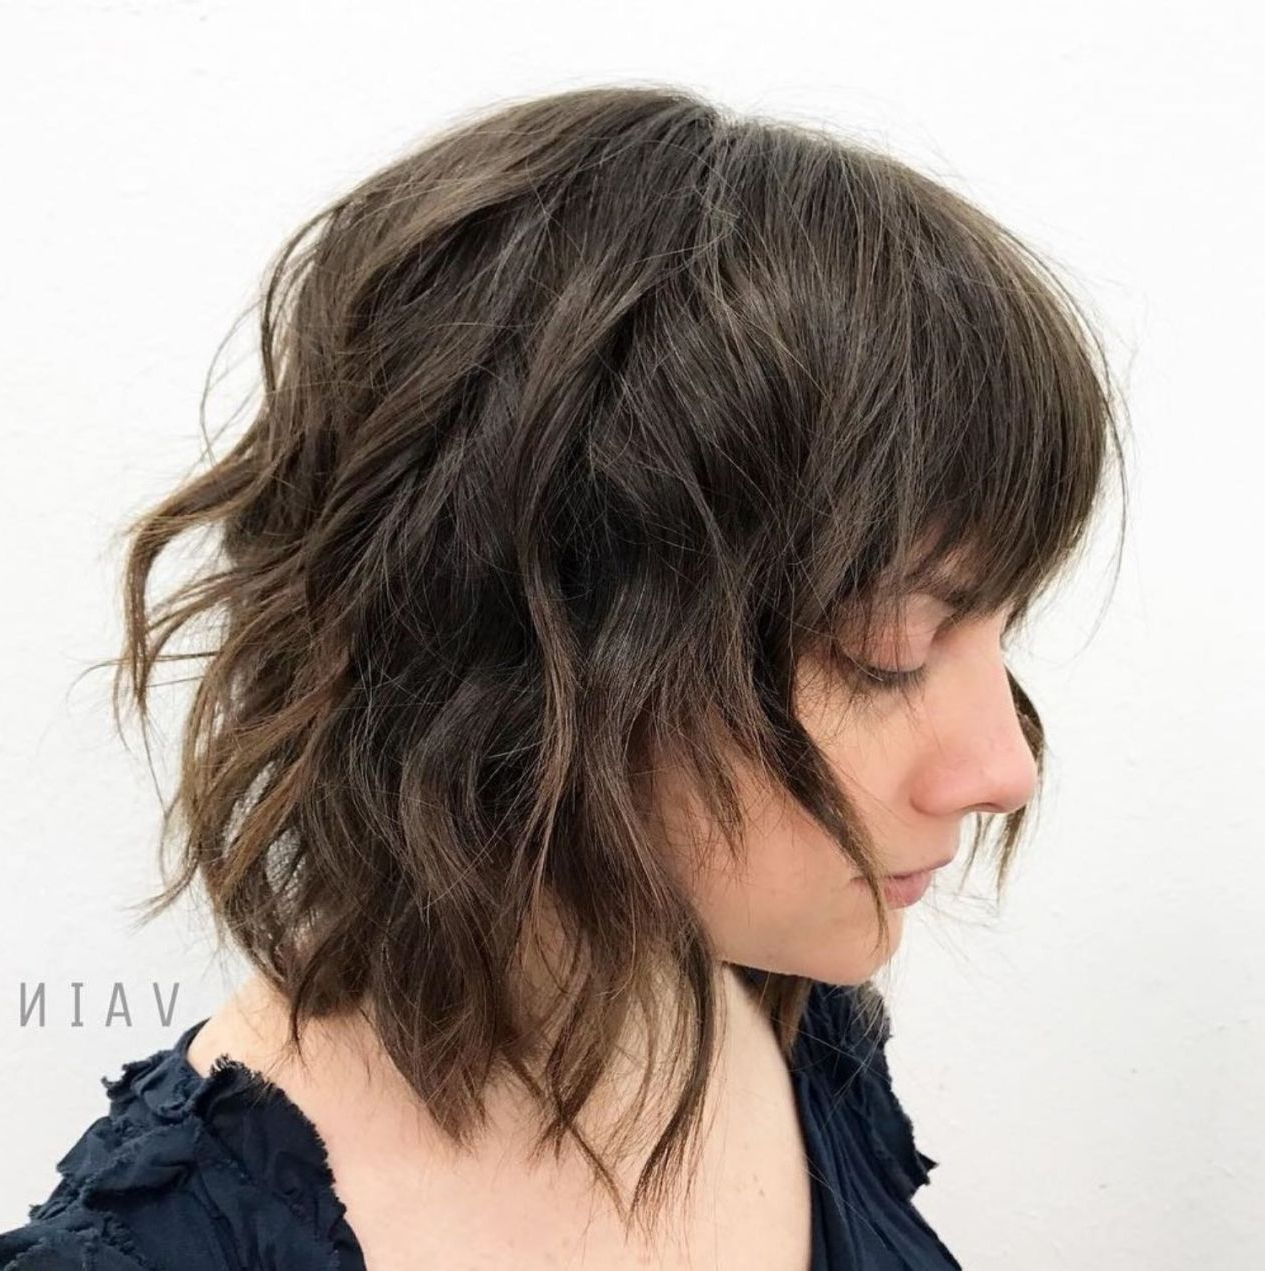 Current Razored Wavy Shag Haircuts With Light Bangs With 60 Most Universal Modern Shag Haircut Solutions In (View 4 of 20)